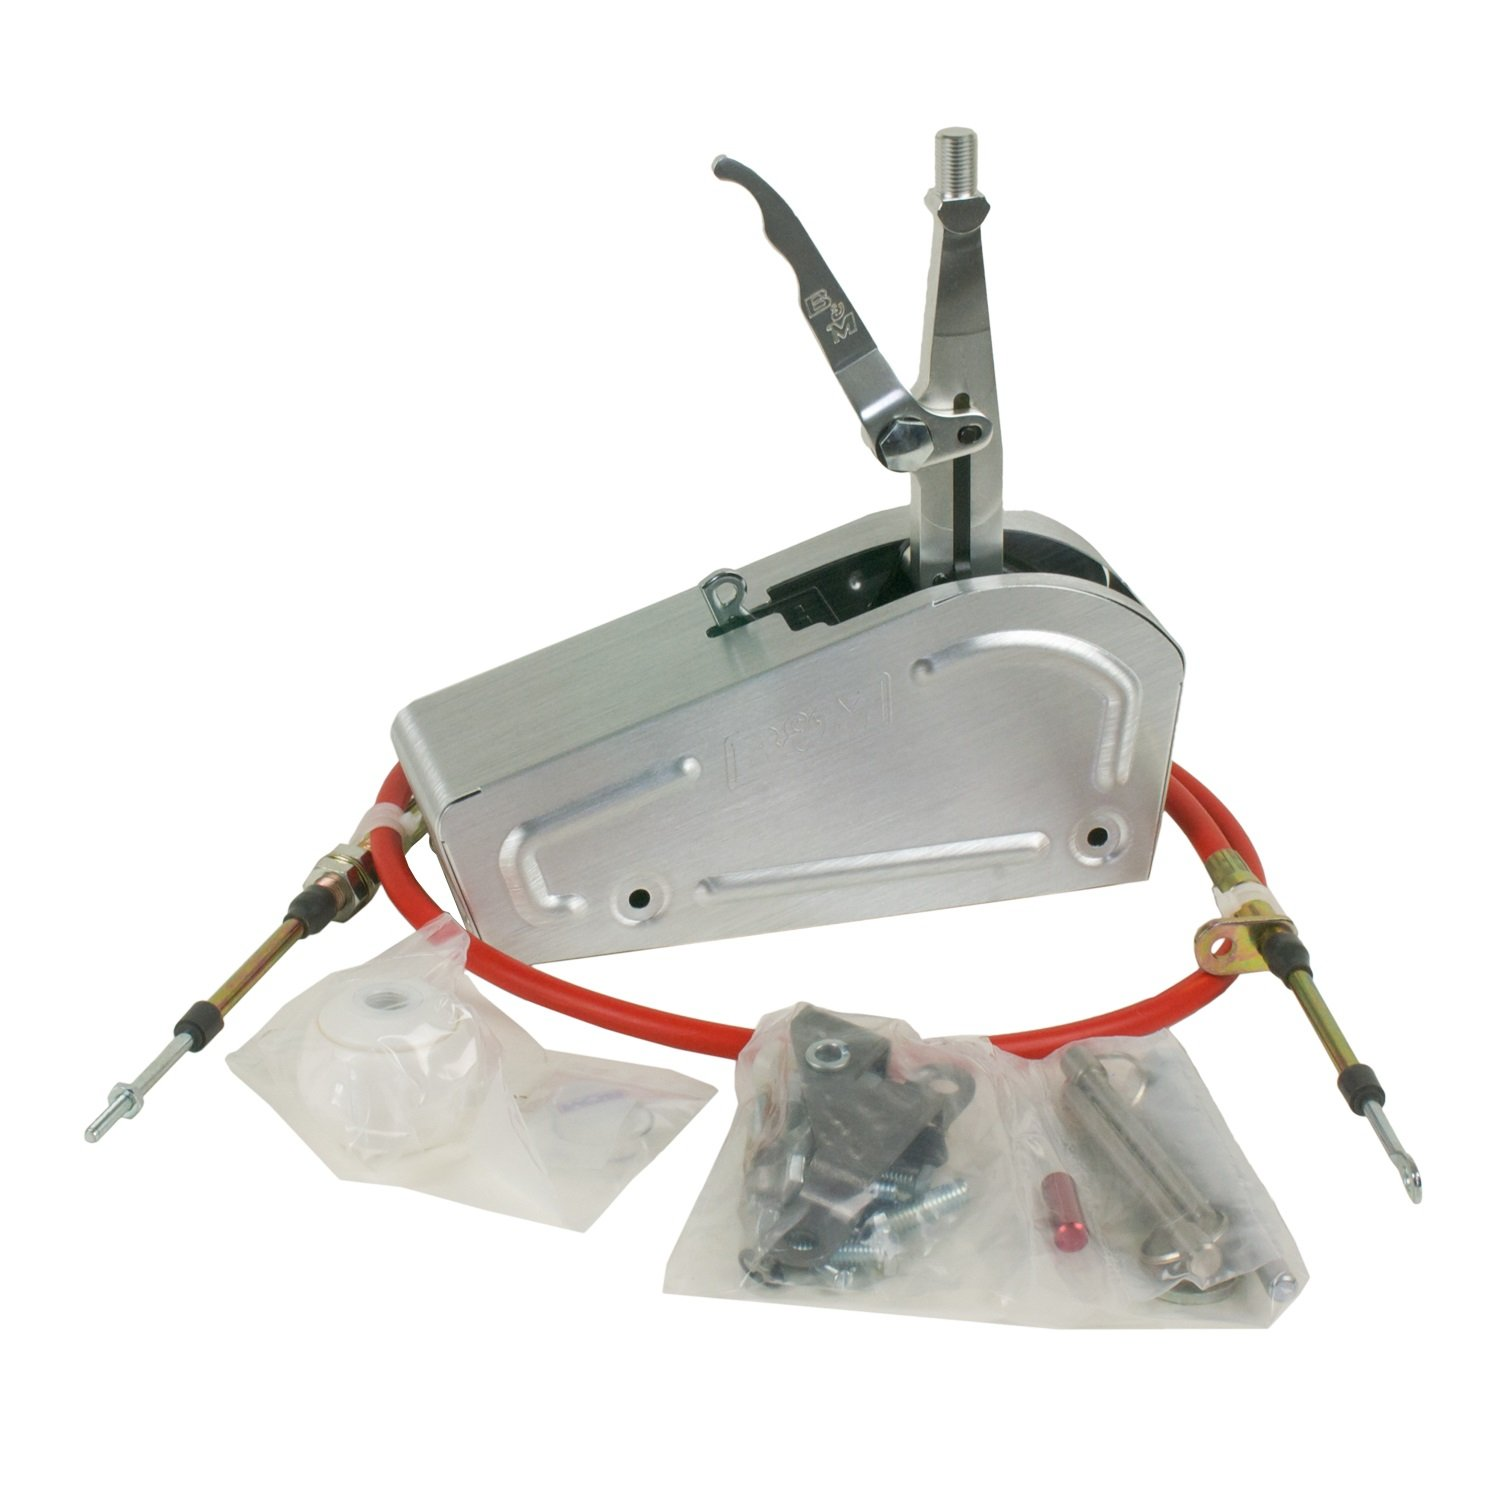 B/&M 80704 Pro Stick Automatic Shifter with Cover